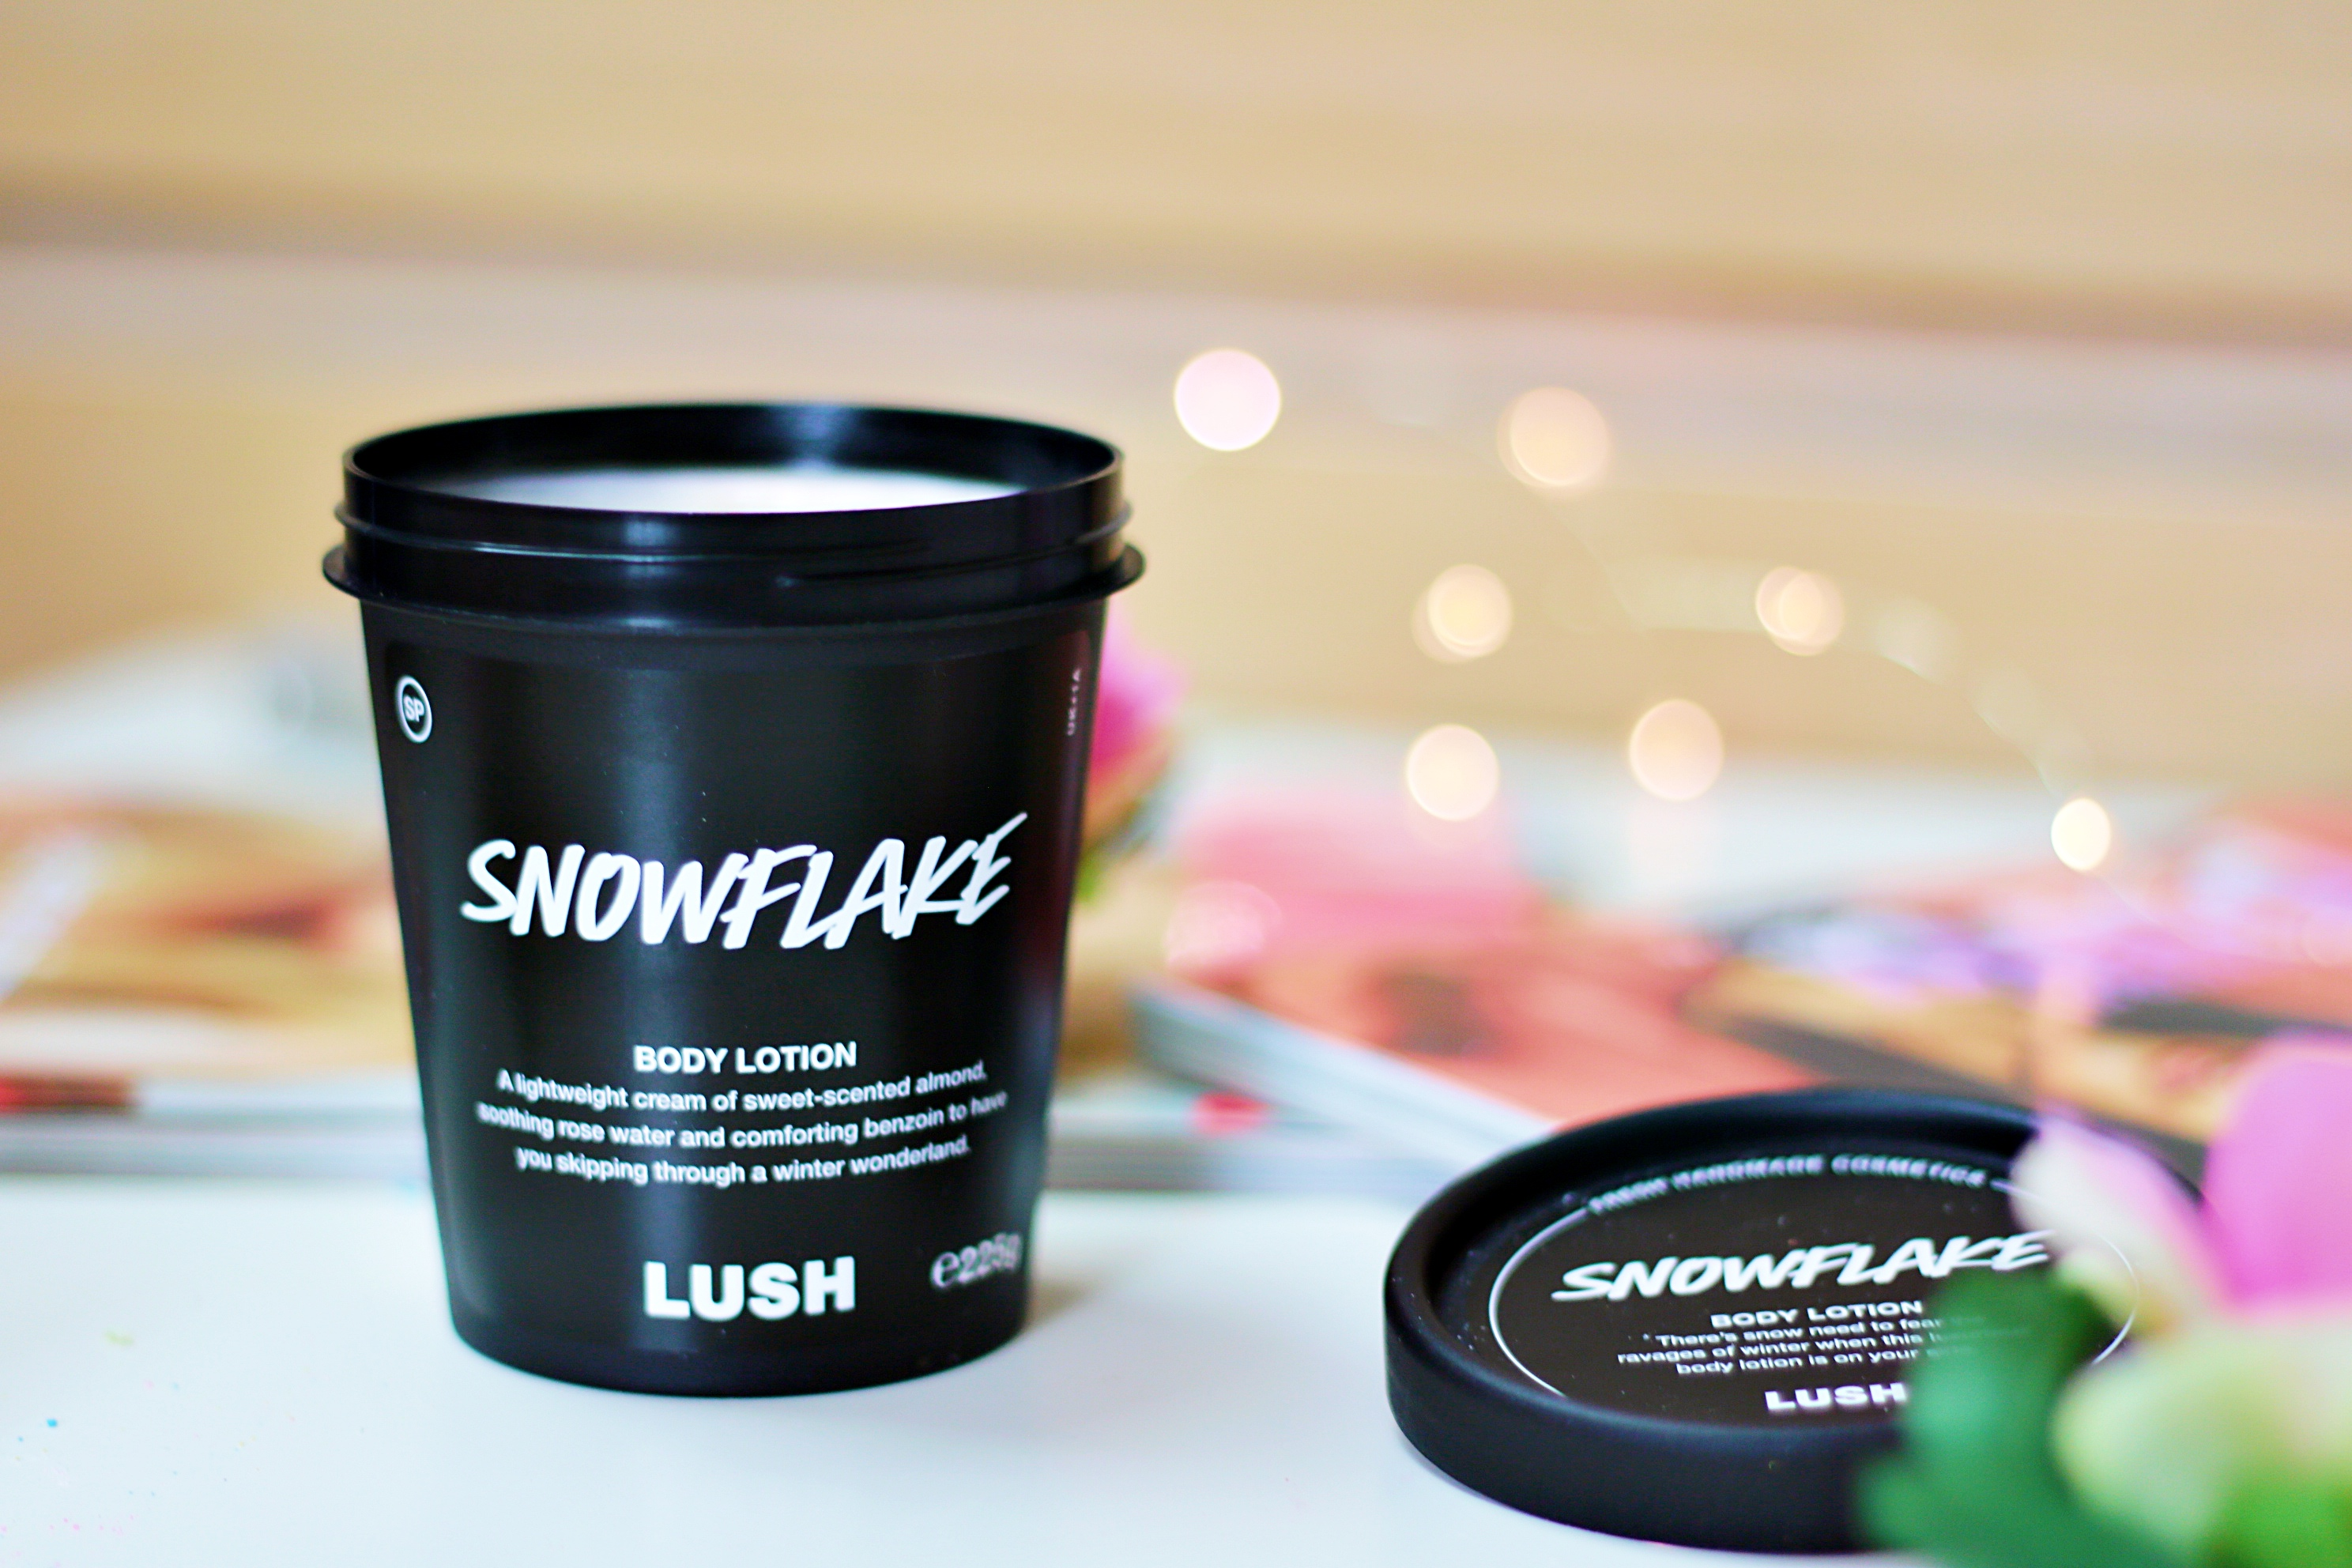 Lush Christmas 2019 Snowflake Body Lotion